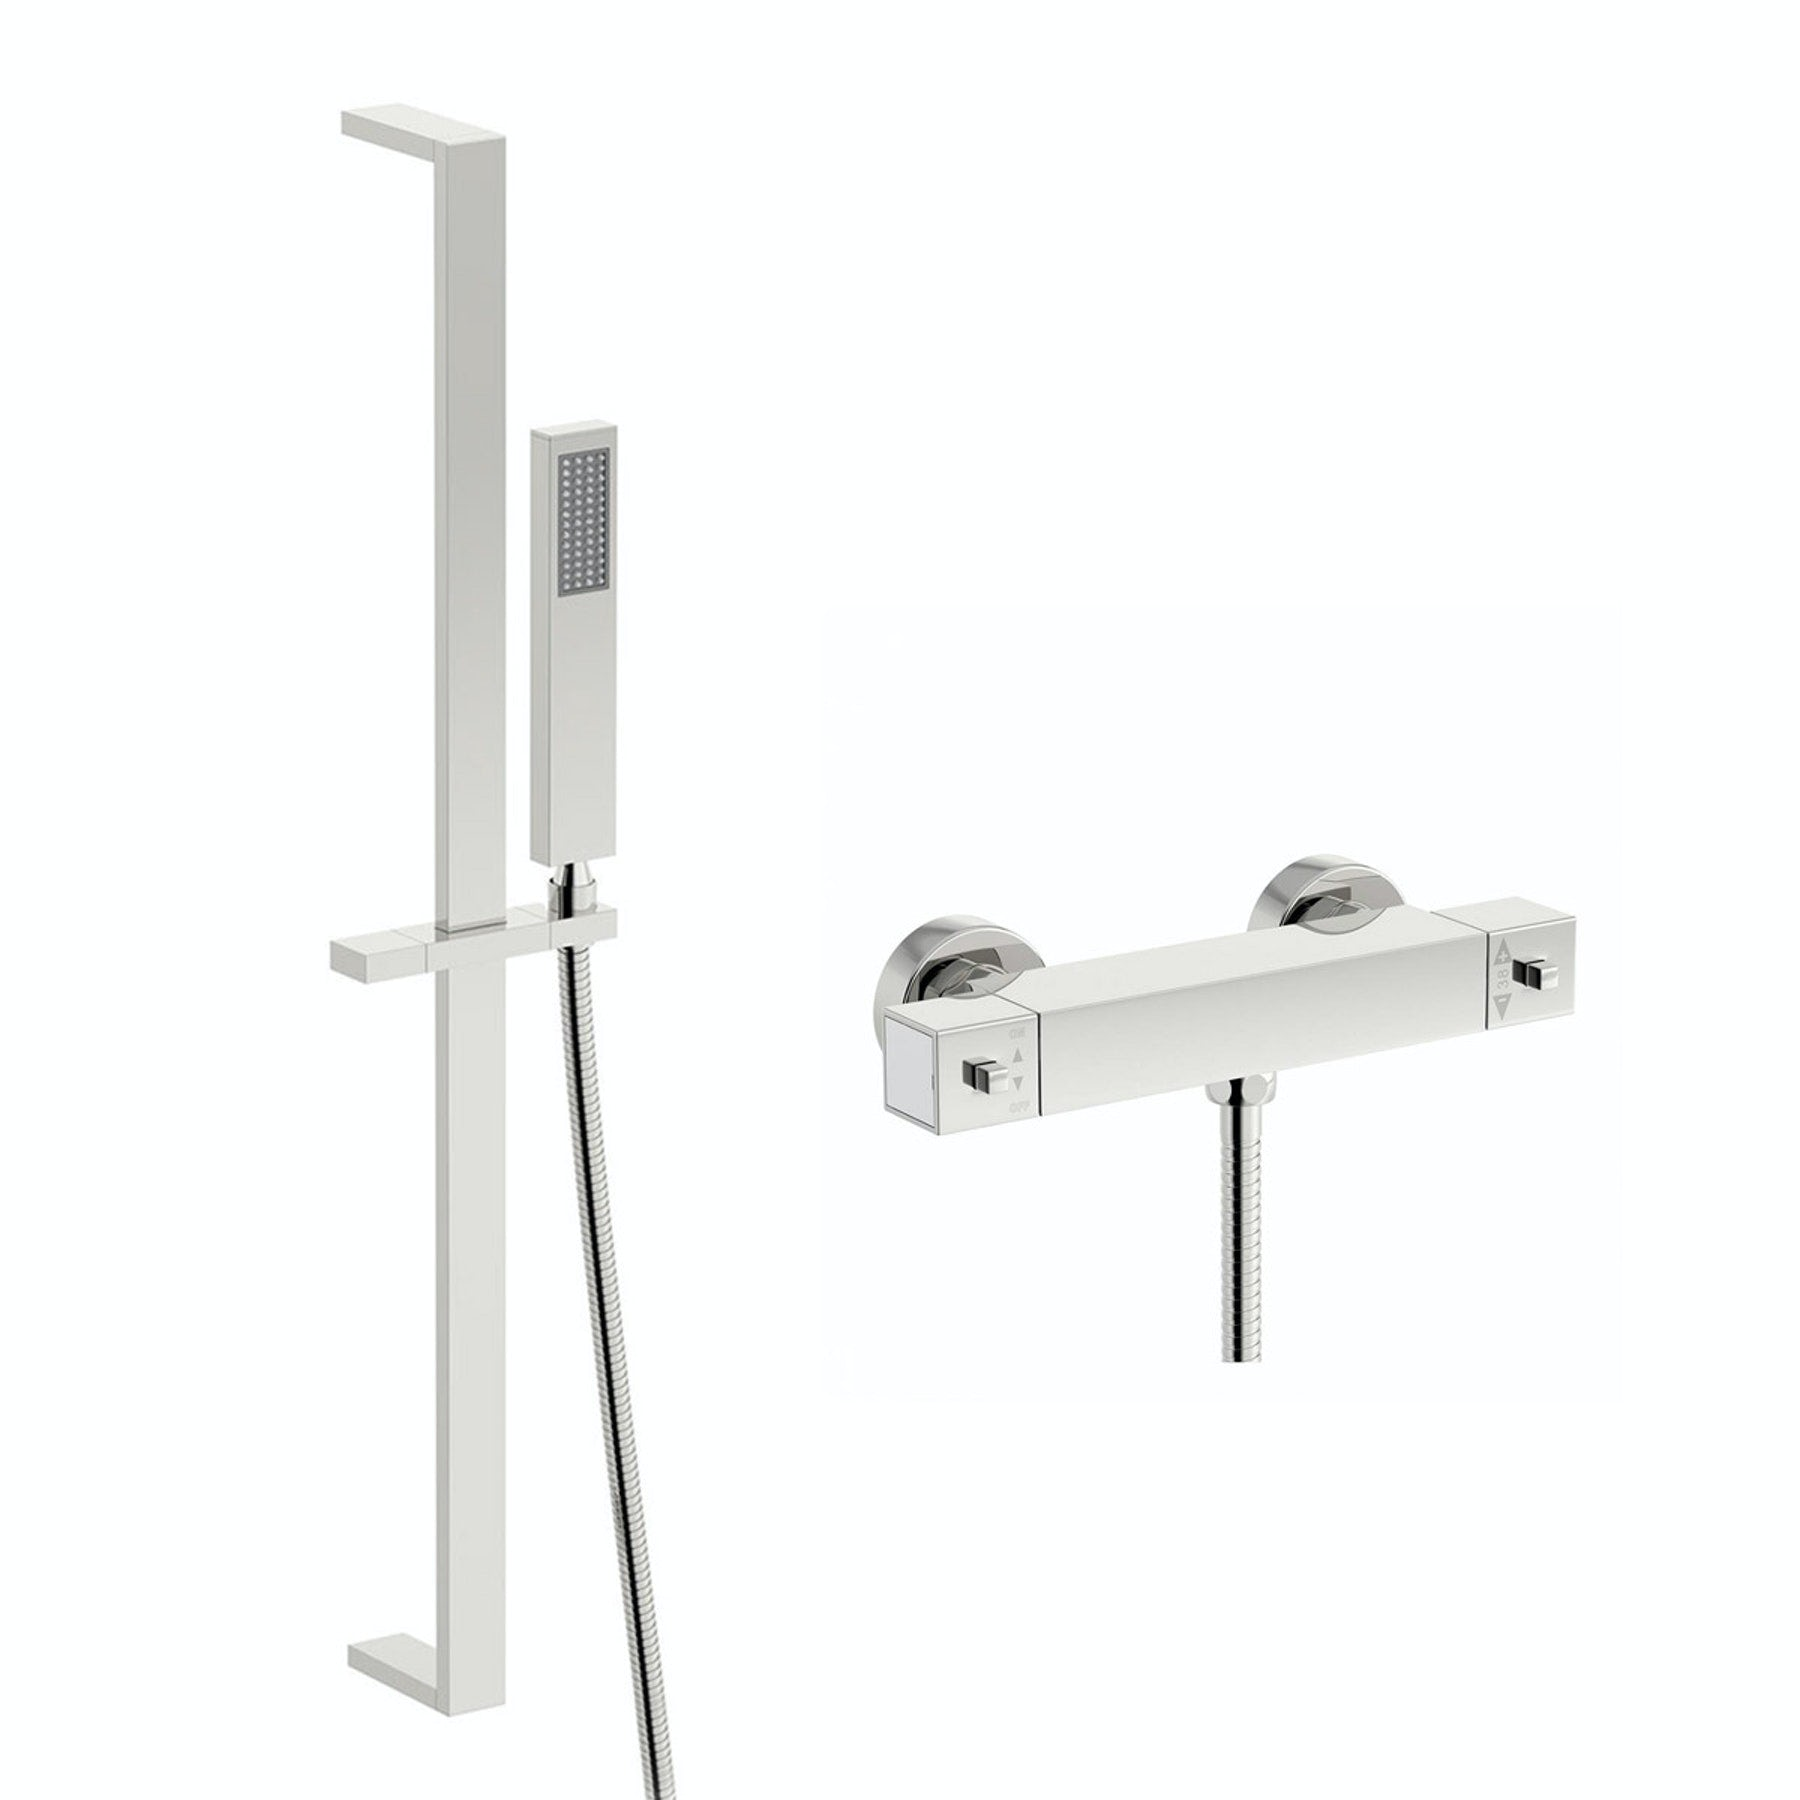 Orchard Wye thermostatic bar shower valve with slider rail kit